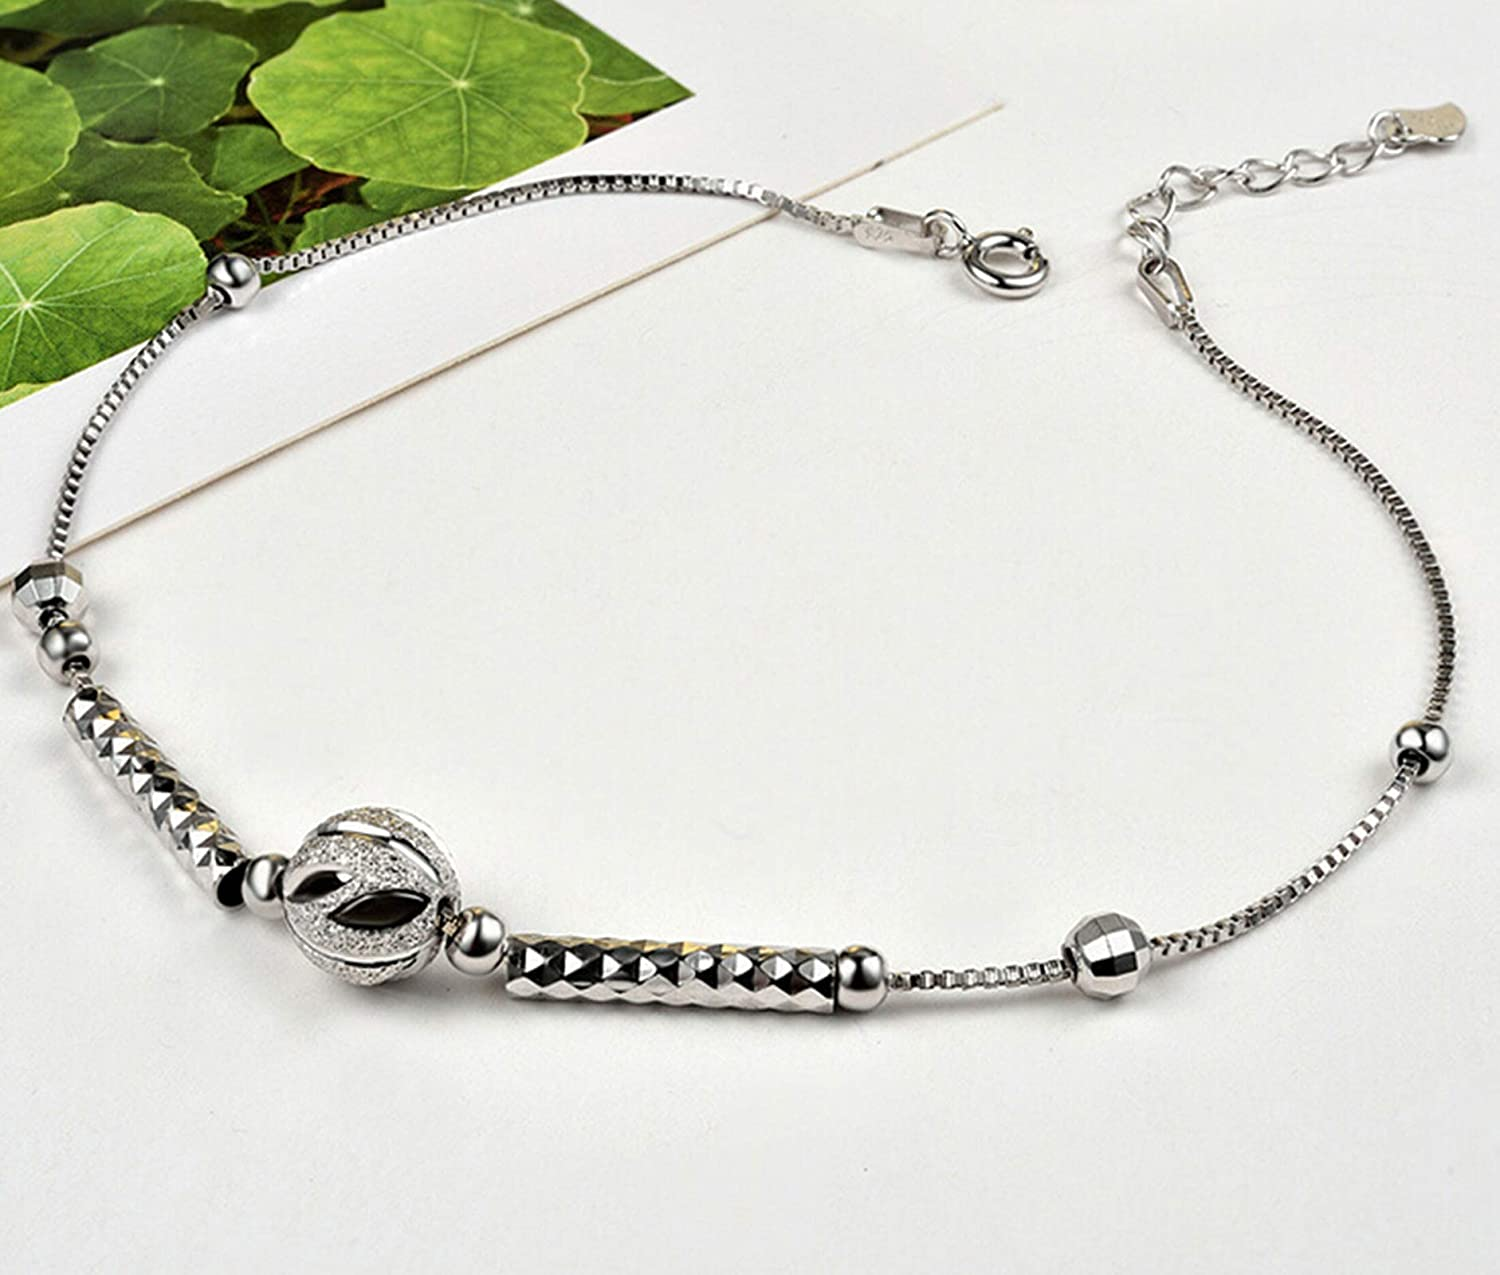 AMDXD Jewelry Anklet Silver Sterling Silver Ball Ankle Chain Women 24CM